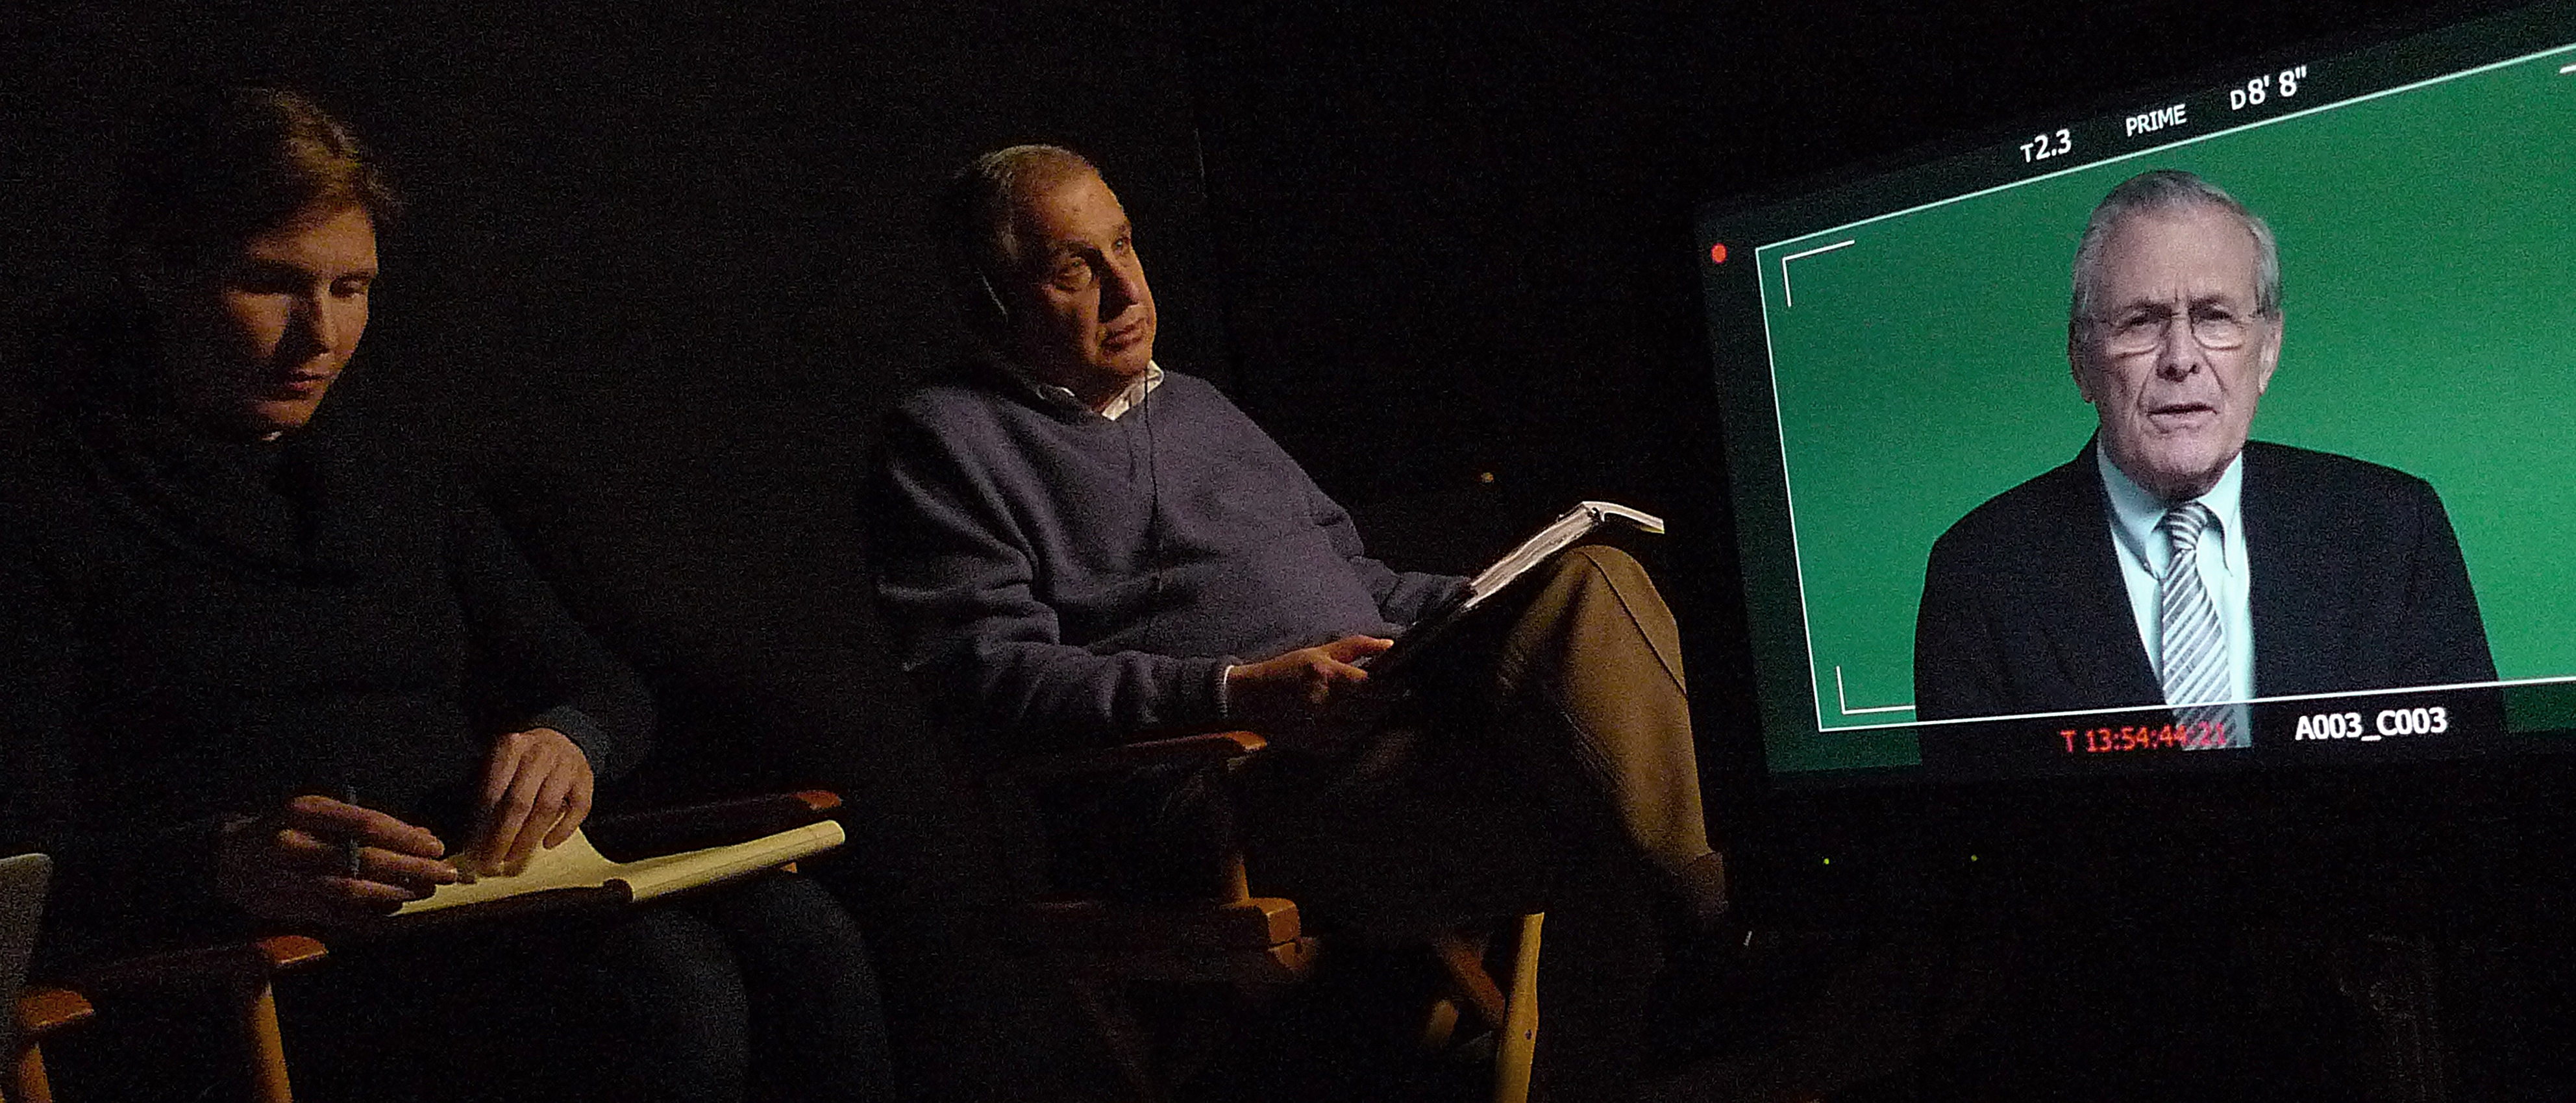 Errol Morris (C) interviews Donald Rumsfeld (R) using his Interrotron device. (RADiUS-TWC)